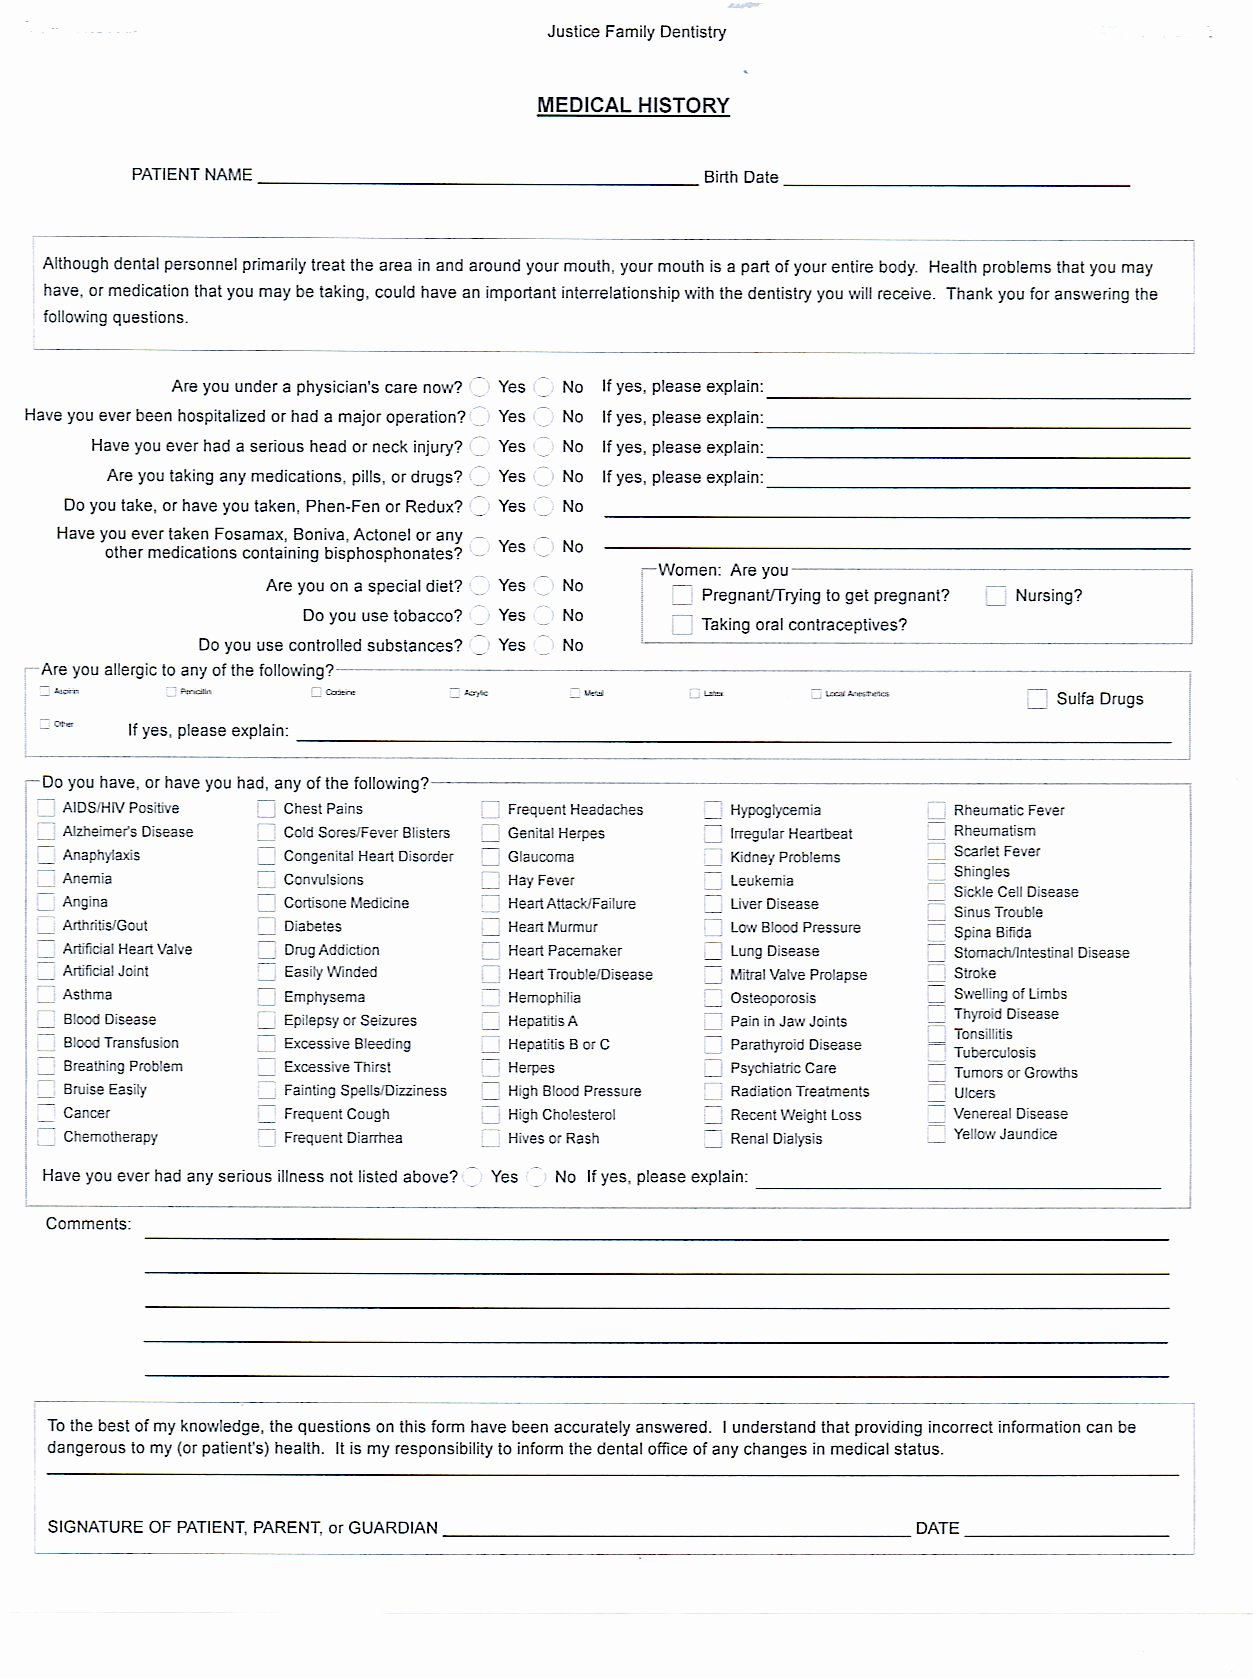 Health History form Template Best Of Medical History form Template – Medical form Templates